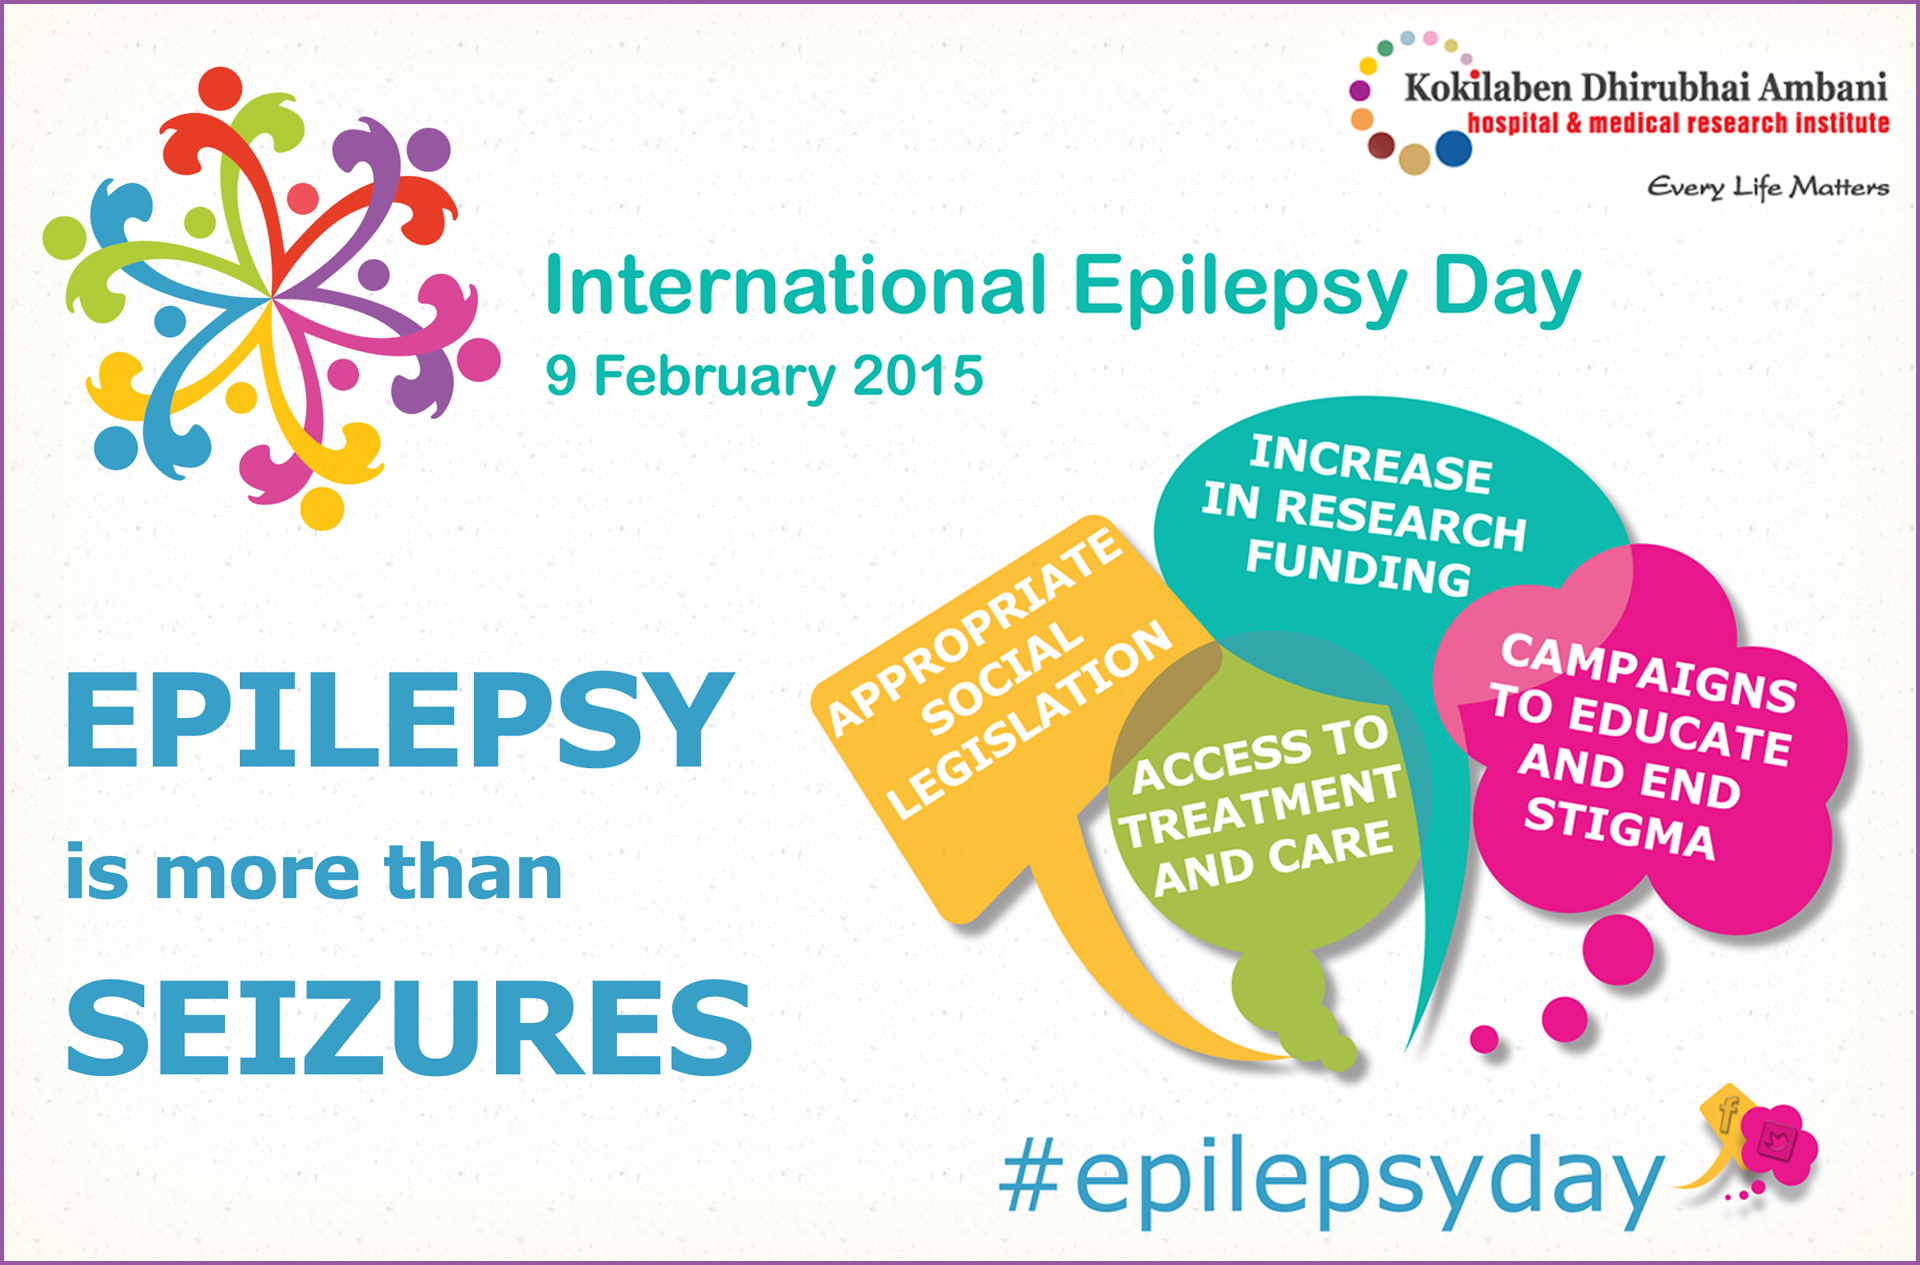 World Epilepsy Day